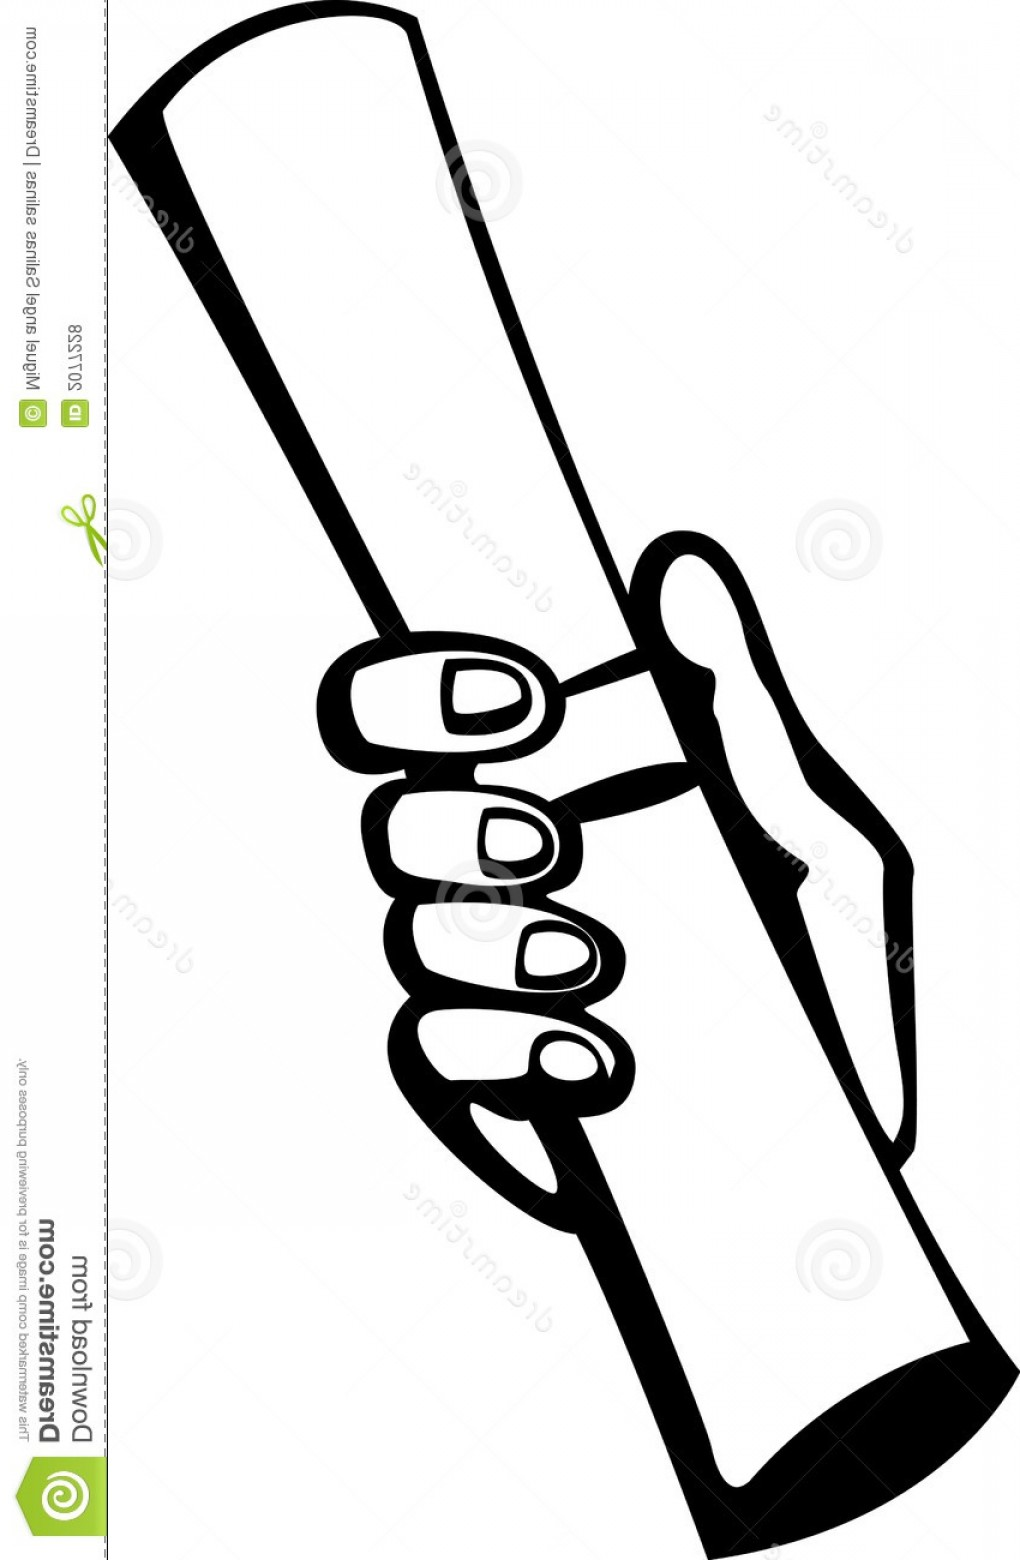 Newspaper Clip Art Vector: Royalty Free Stock Photos Hand Holding Rolled Paper Vector Illustration Image